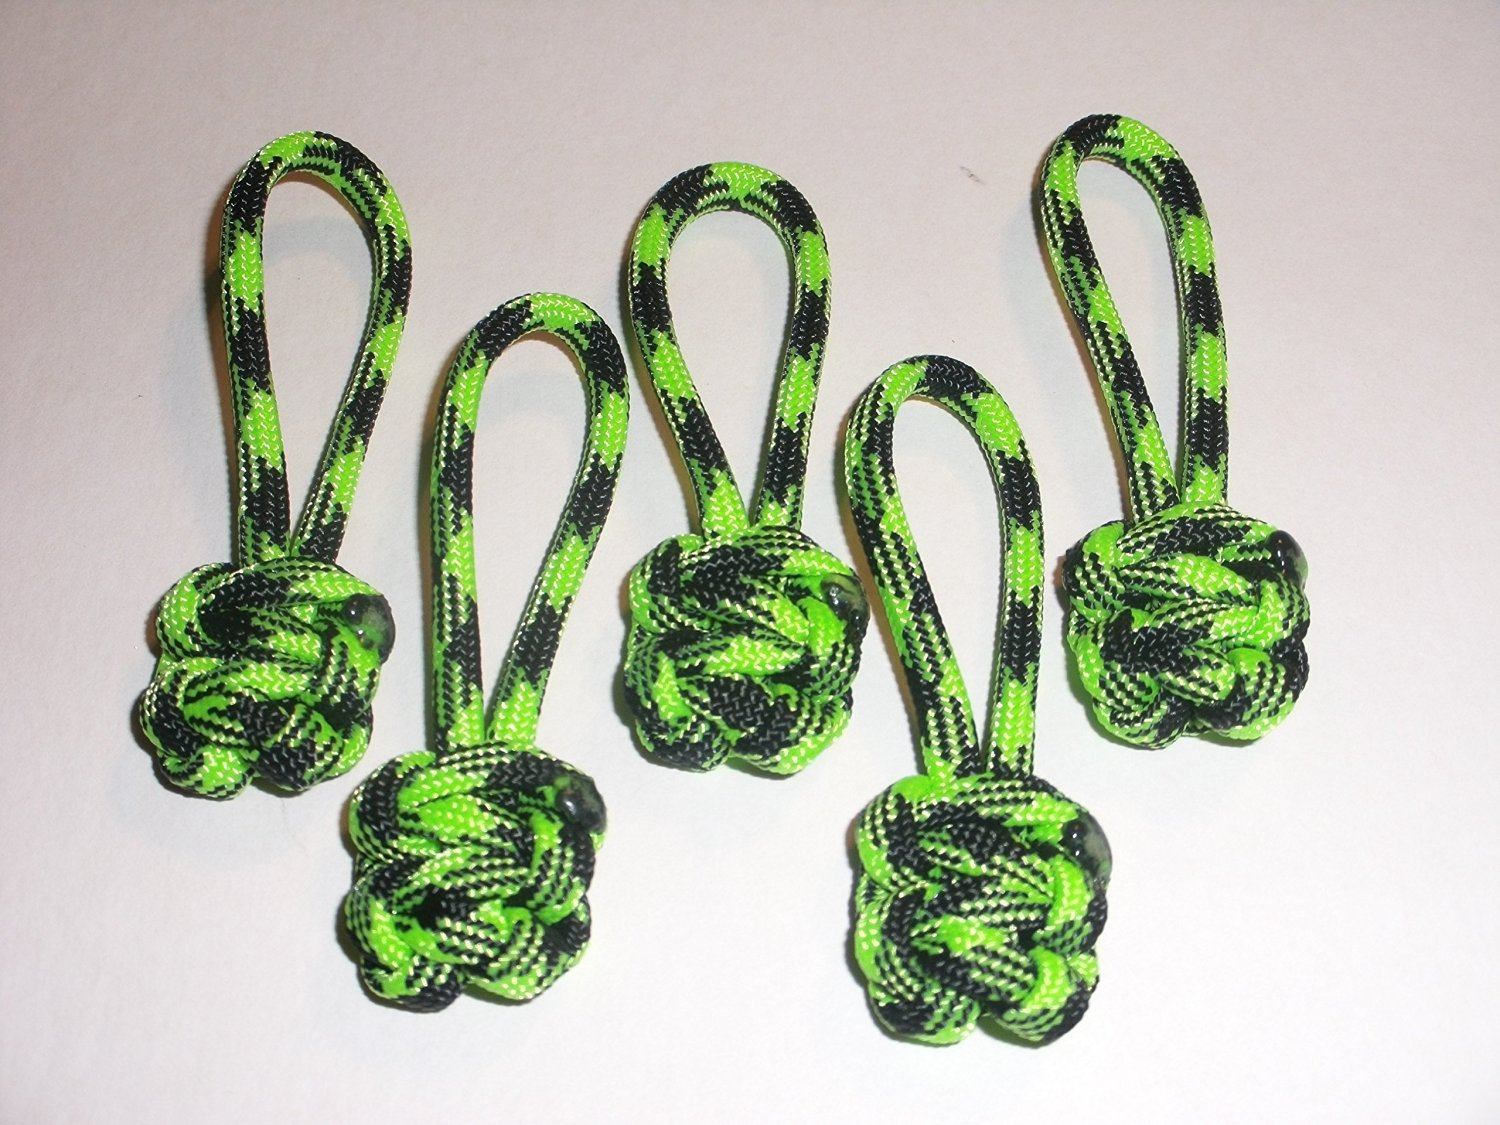 RedVex Paracord Zipper Pulls / Lanyards - Lot of 5 - ~2.5 - Zombie Outbreak Green